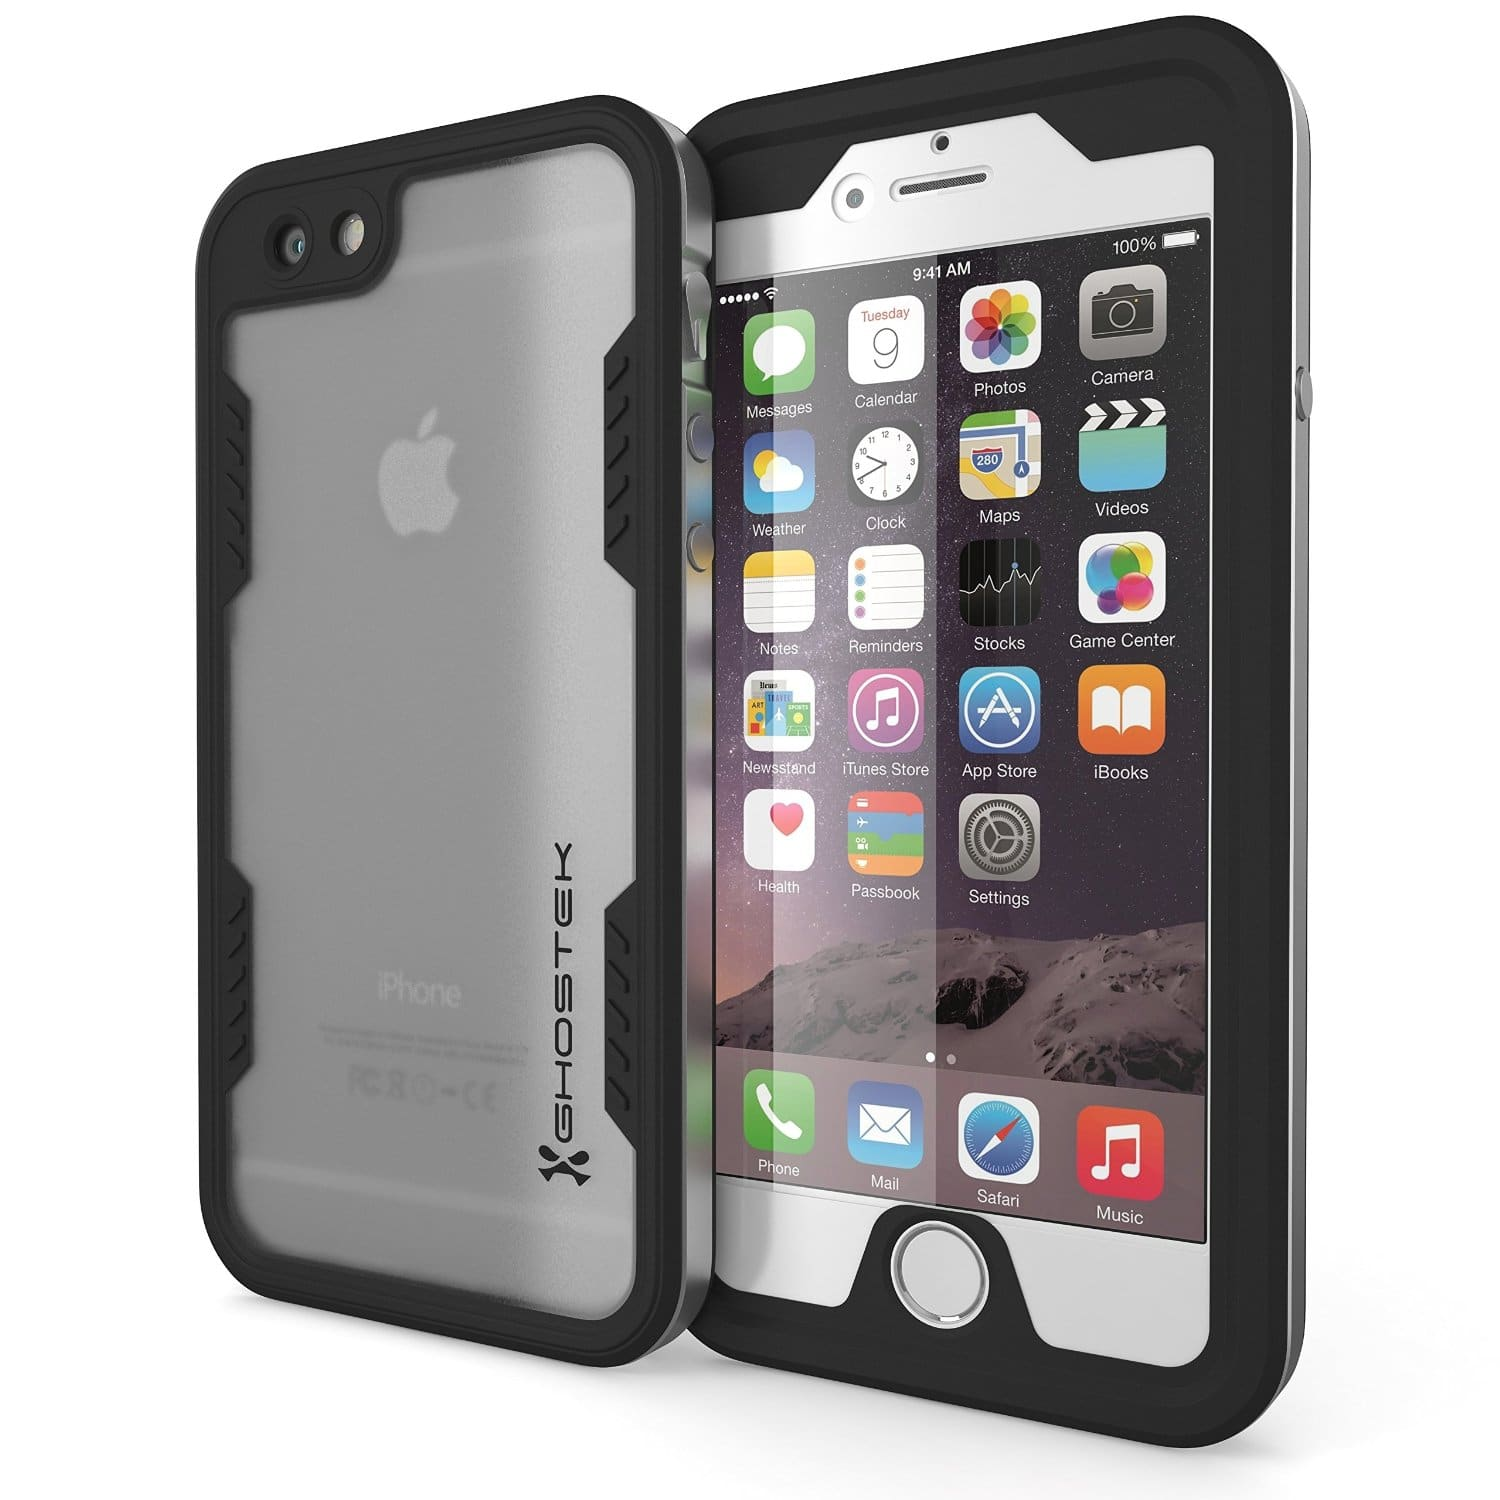 iPhone 6 Waterproof Case, Ghostek Atomic 2.0 Waterproof Case W/ Attached Screen Protector for FREE AC + Free Shipping @ Amazon.com